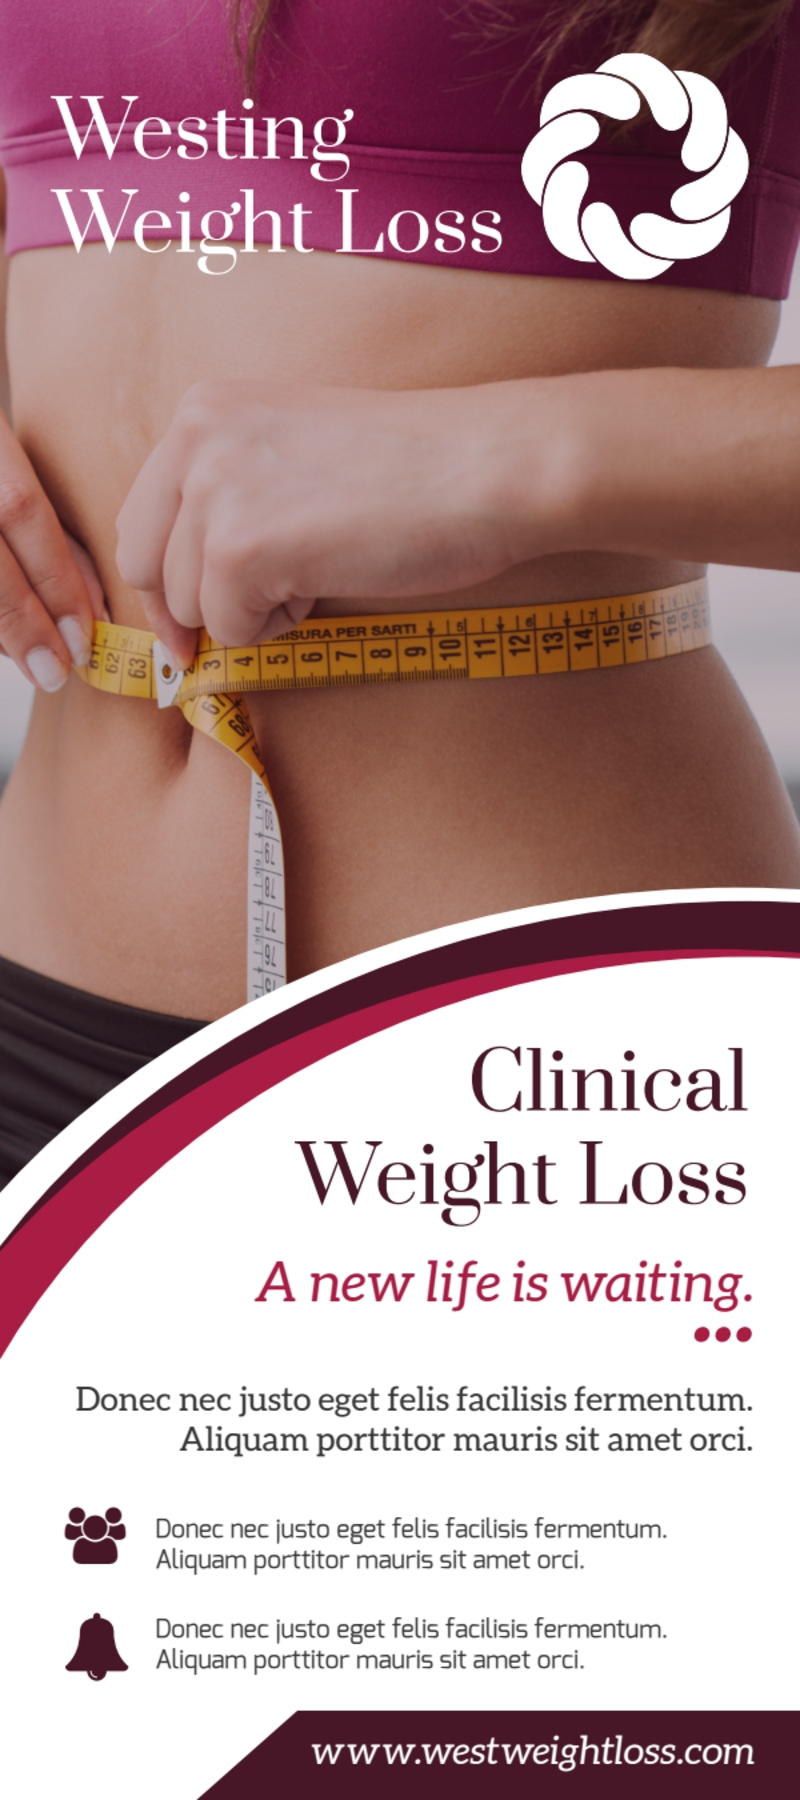 Clinical Weight Loss Flyer Template Preview 2